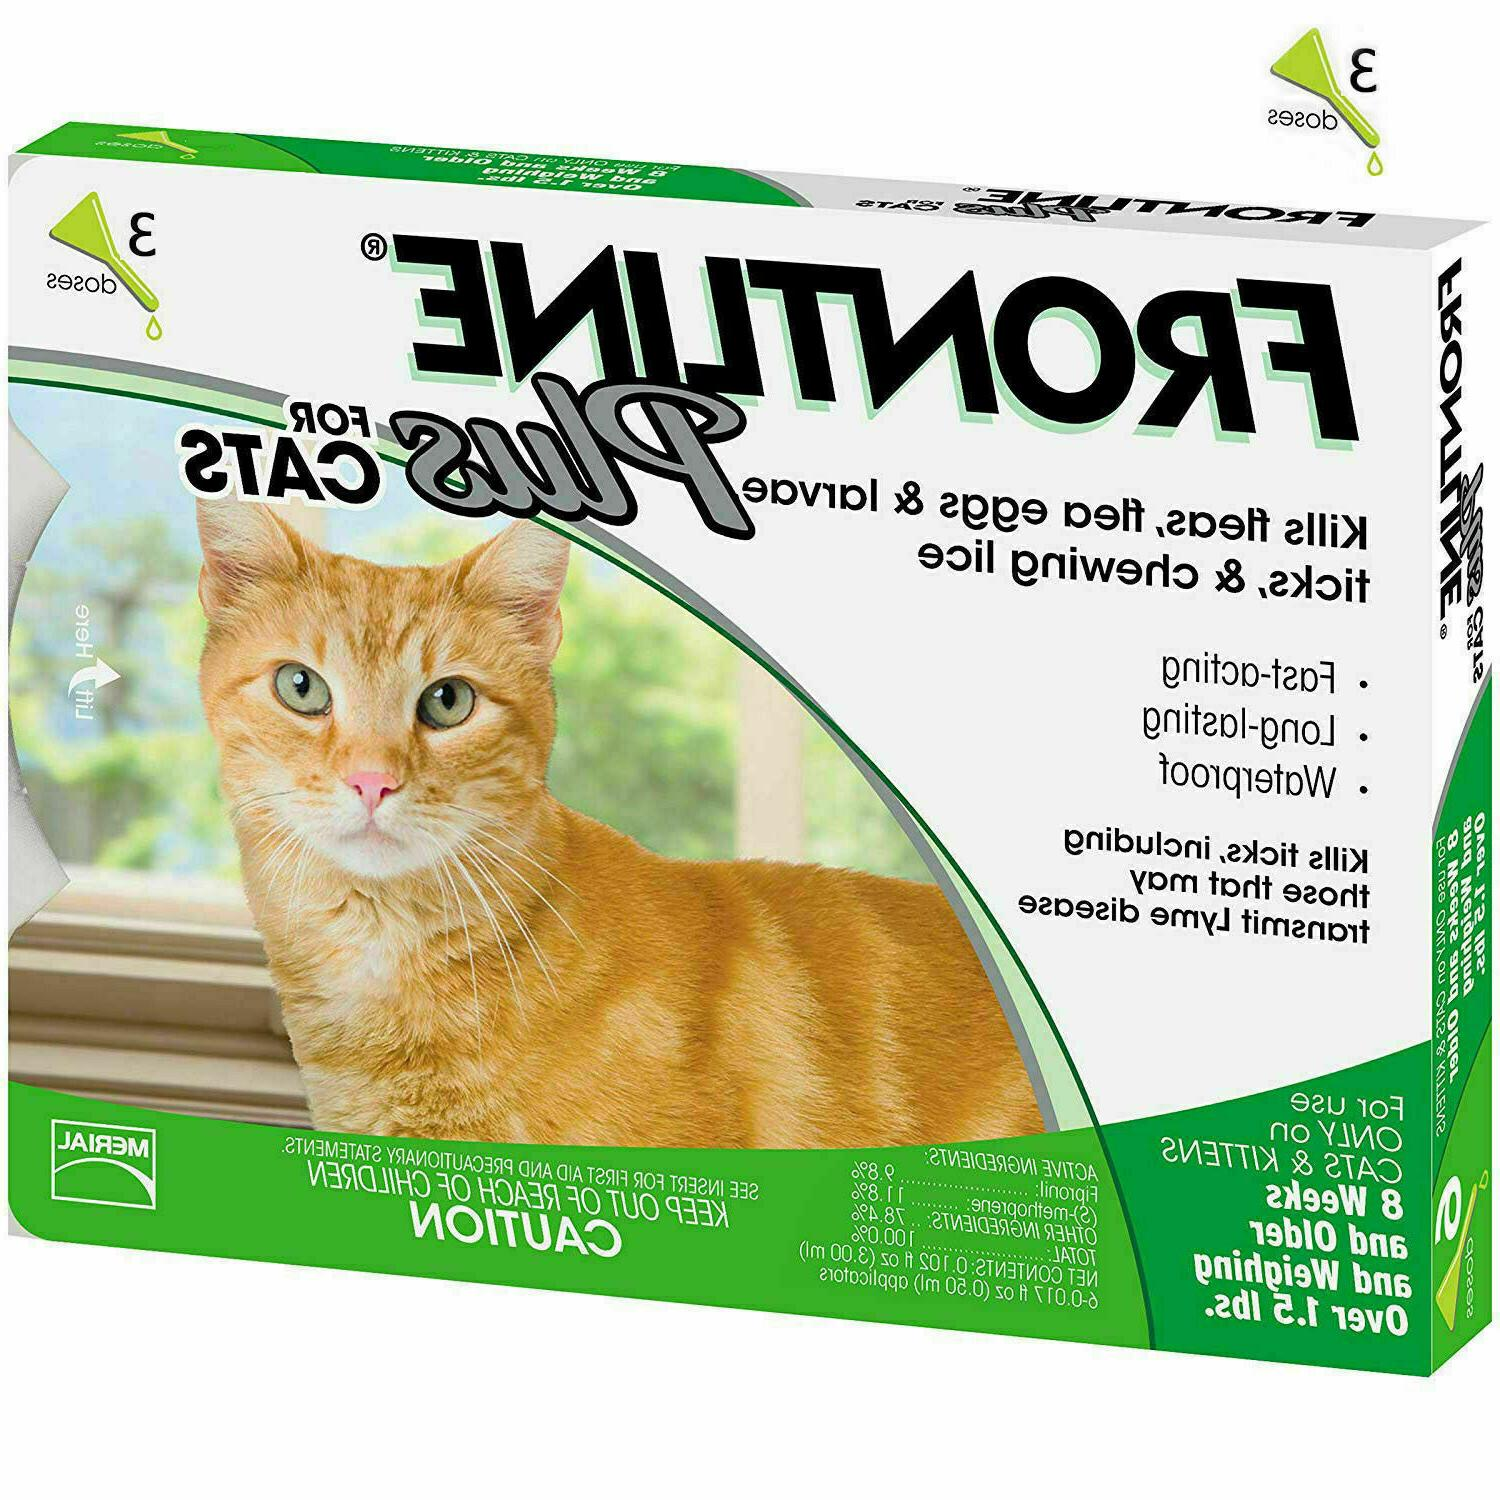 plus for cats 3 doses 3 month